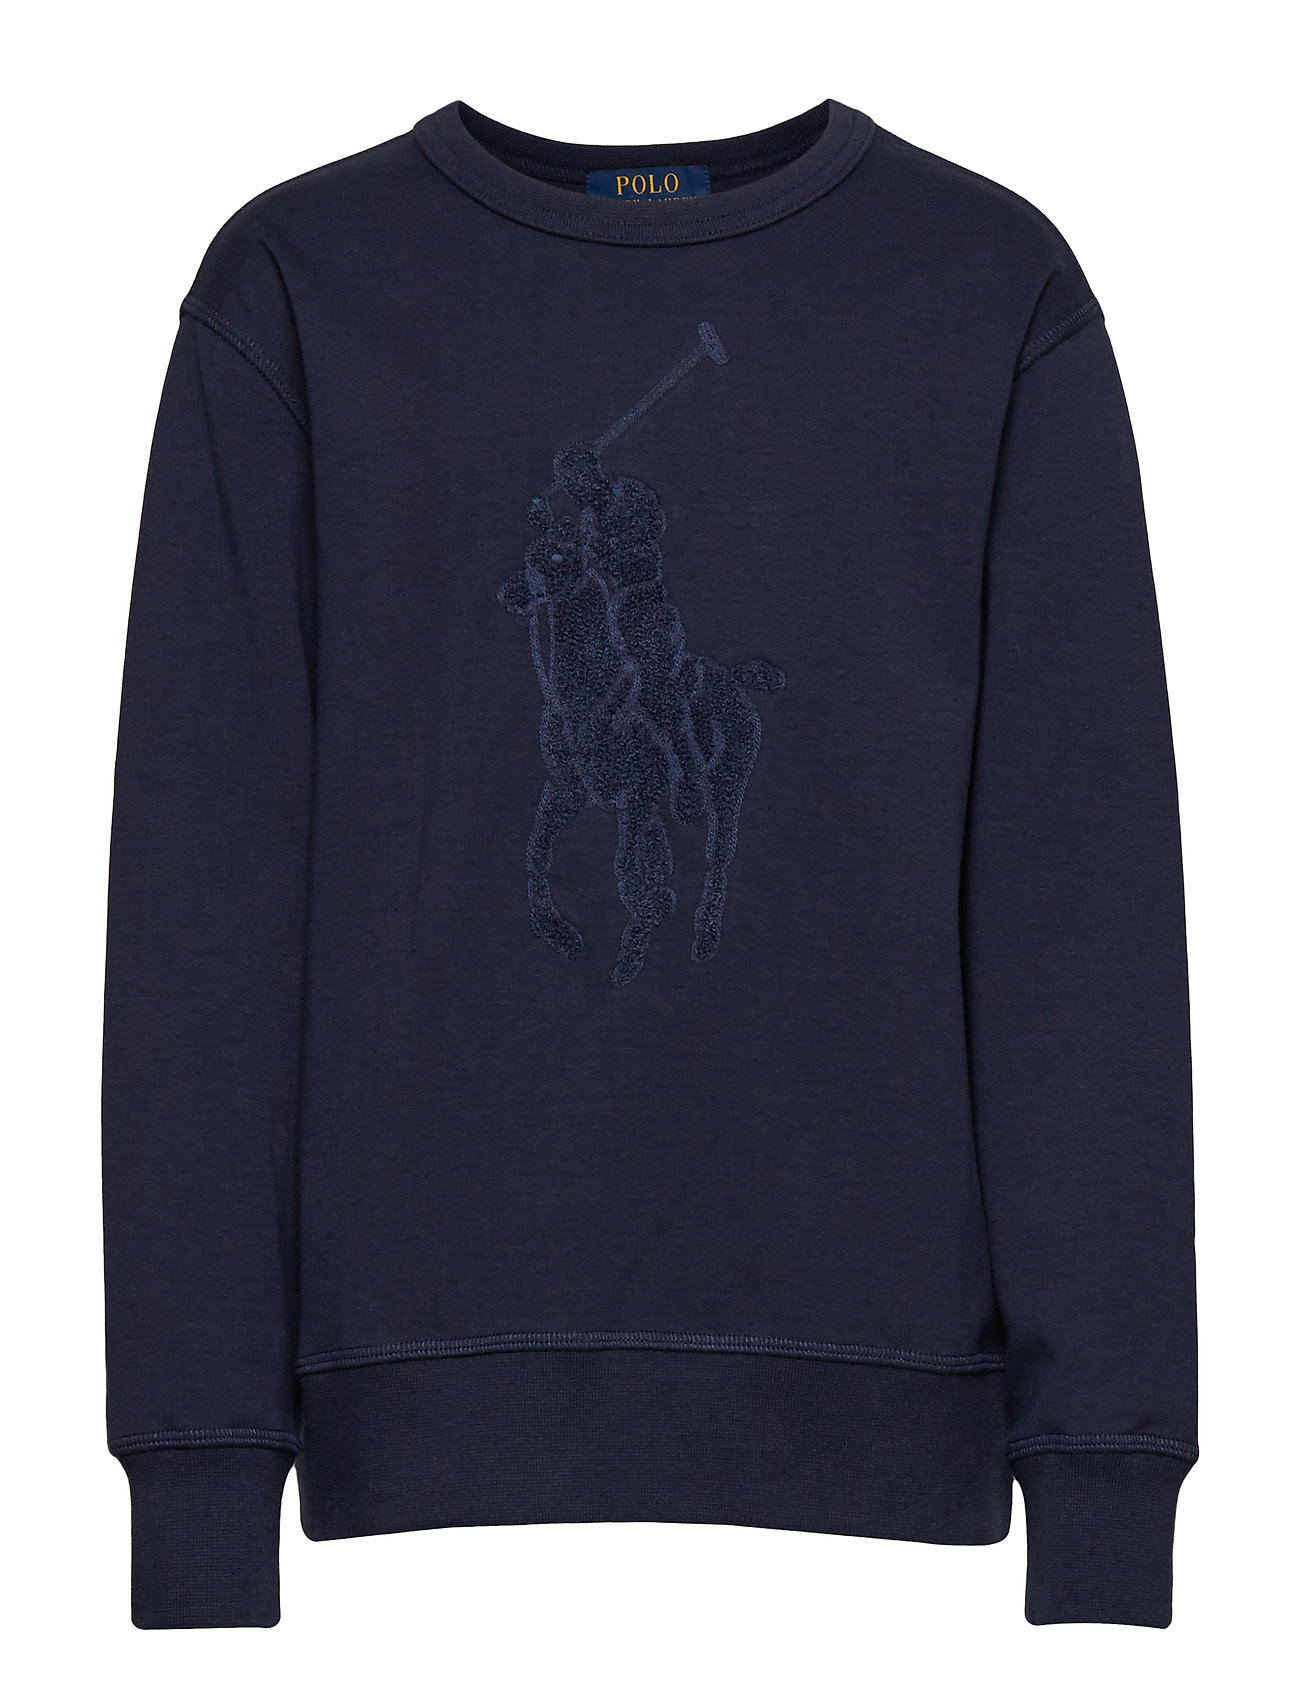 Ralph Lauren Kids Cotton-Blend Sweatshirt - FRENCH NAVY